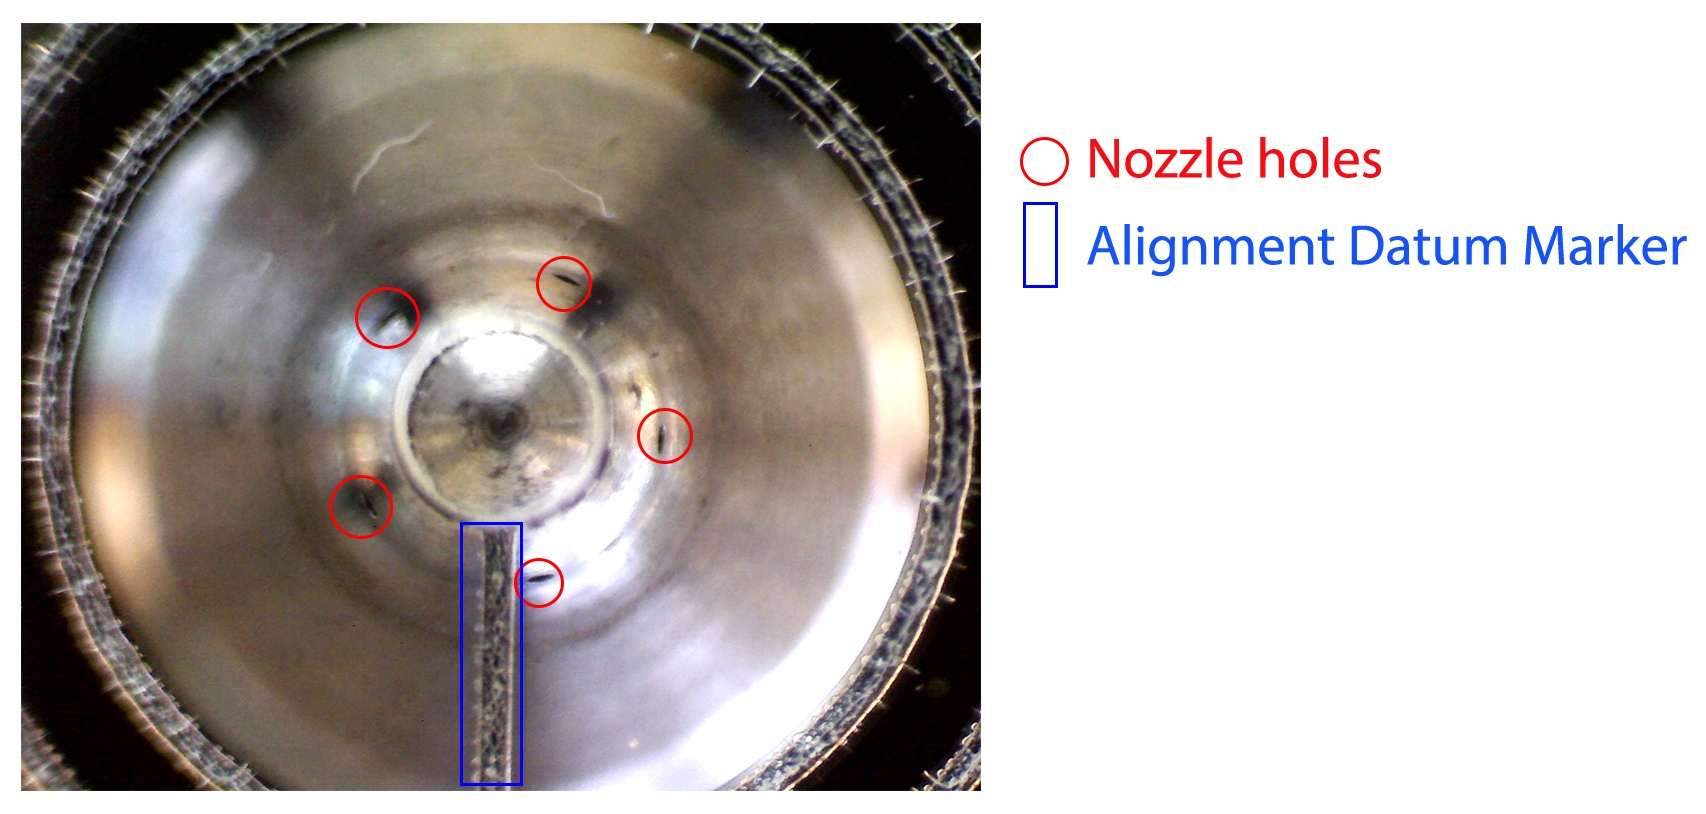 EUI nozzle_alignment.jpg